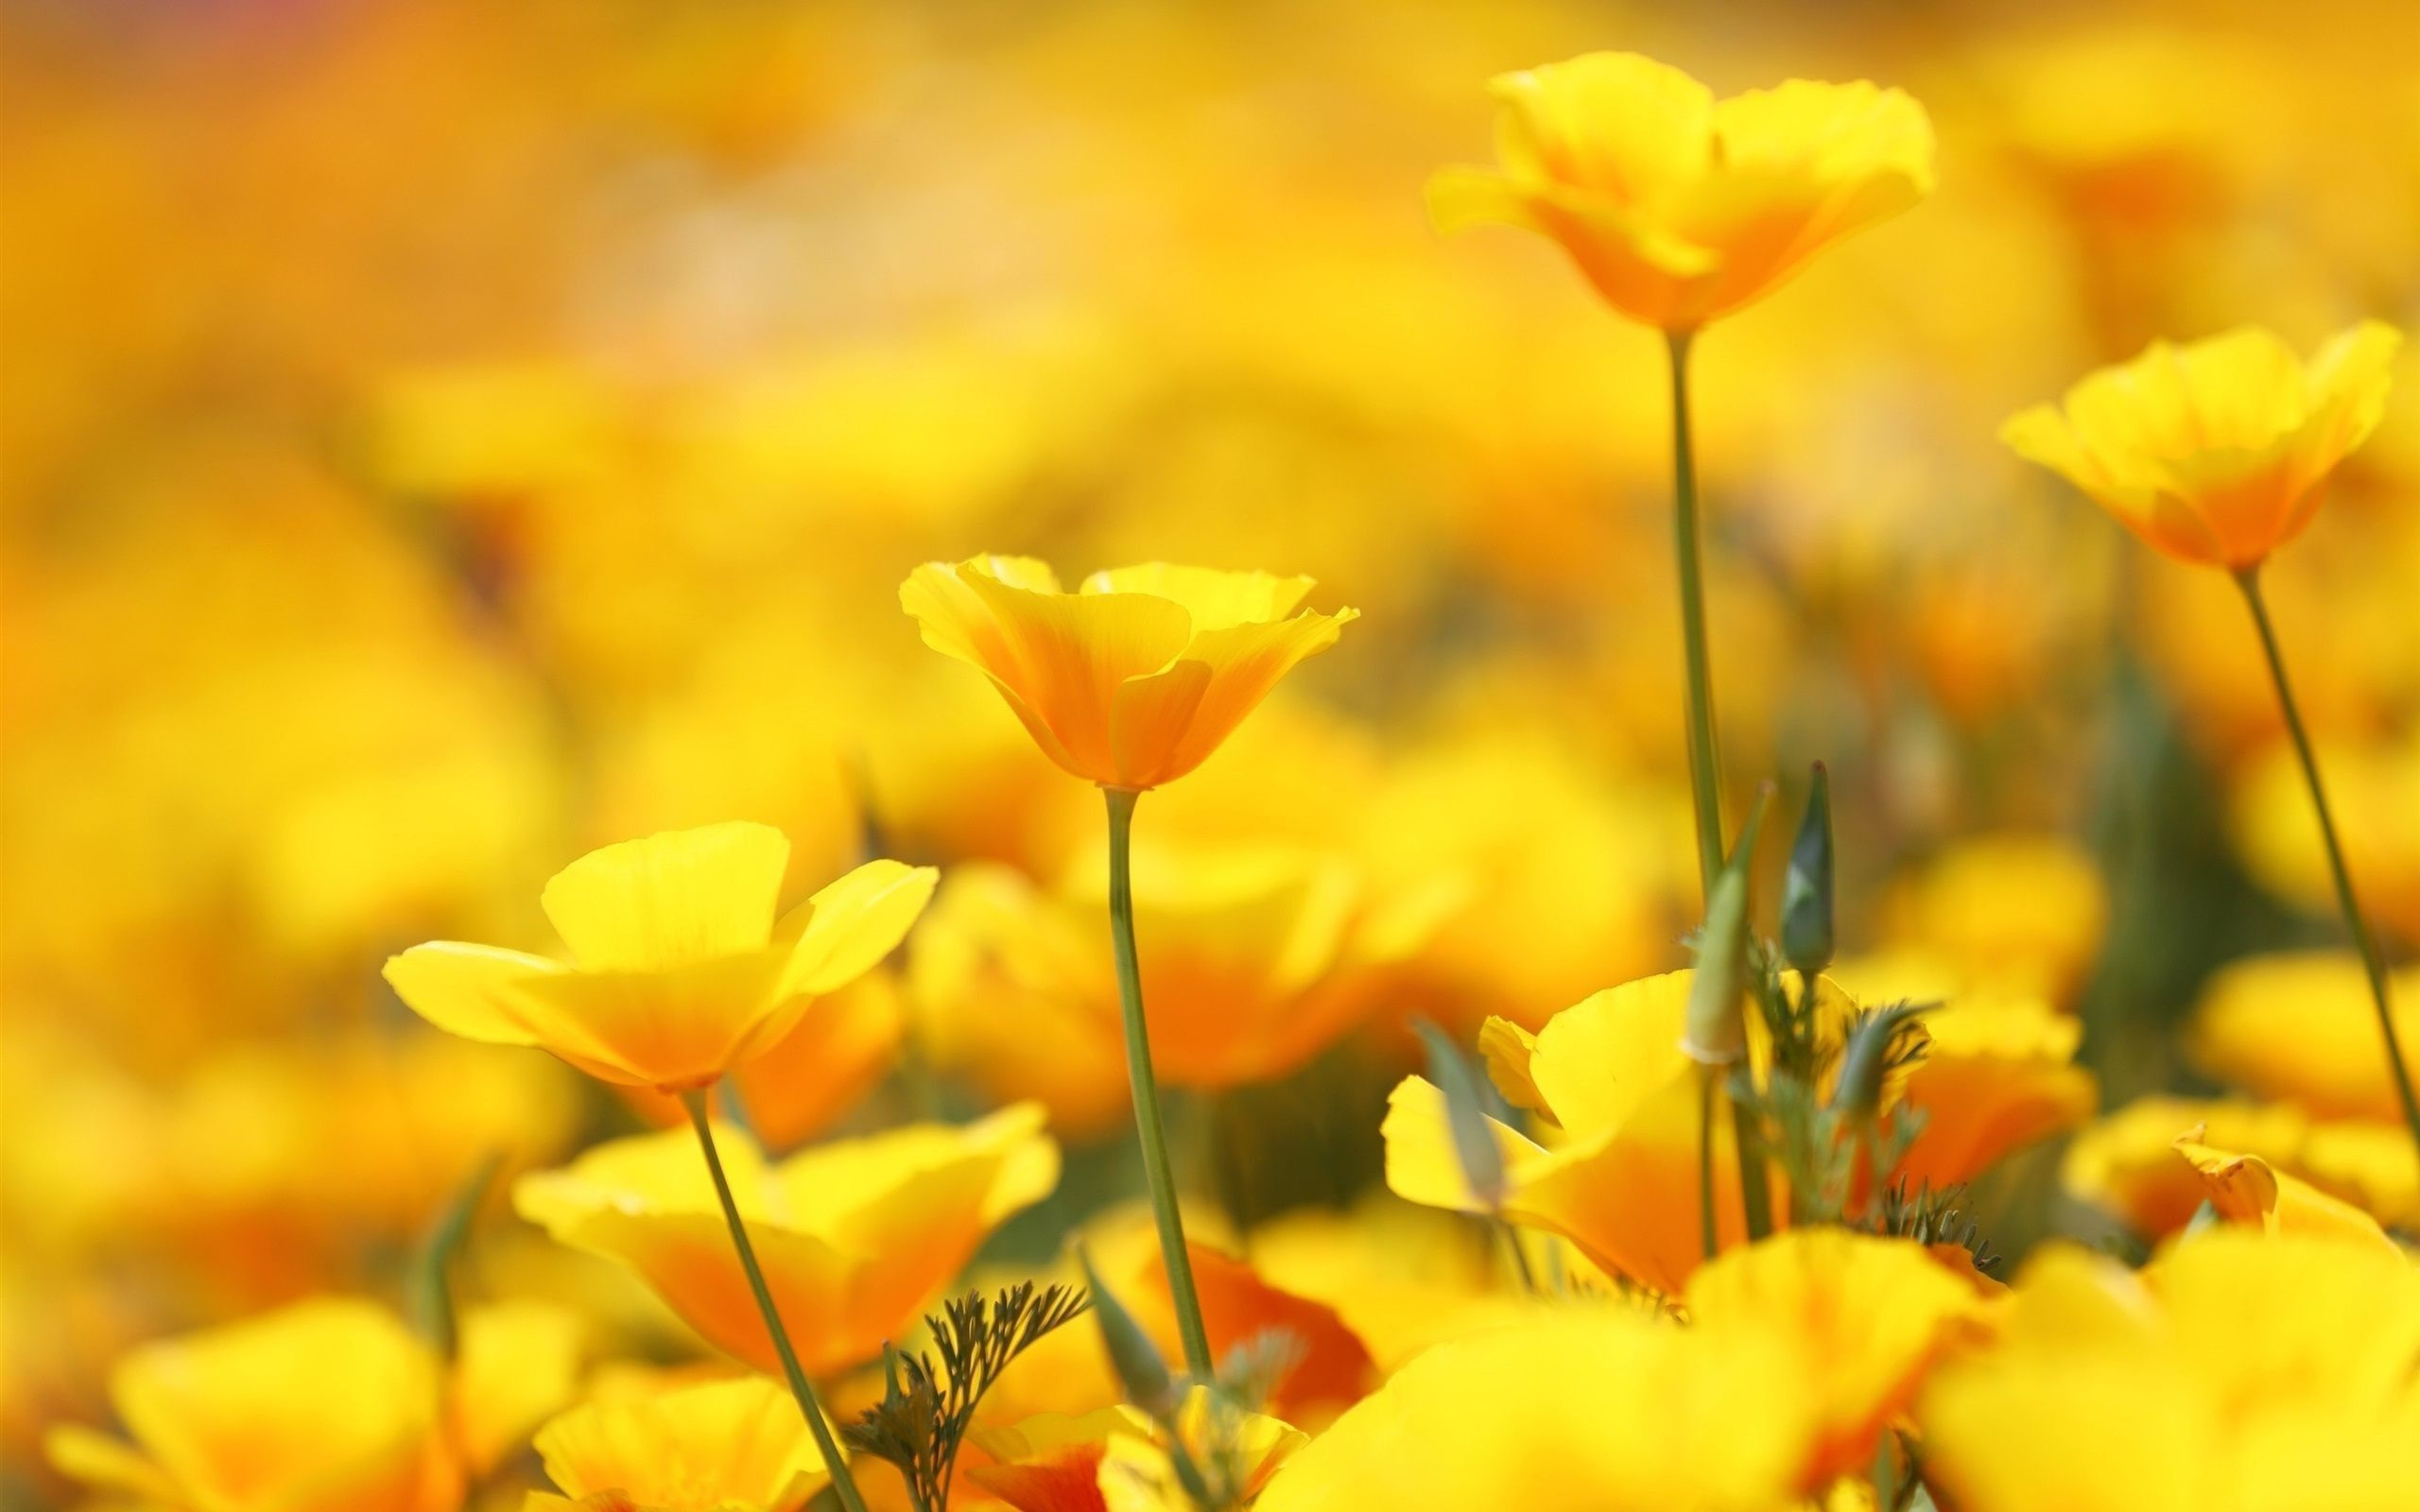 yellow flowers hd wallpapers top free yellow flowers hd backgrounds wallpaperaccess yellow flowers hd wallpapers top free